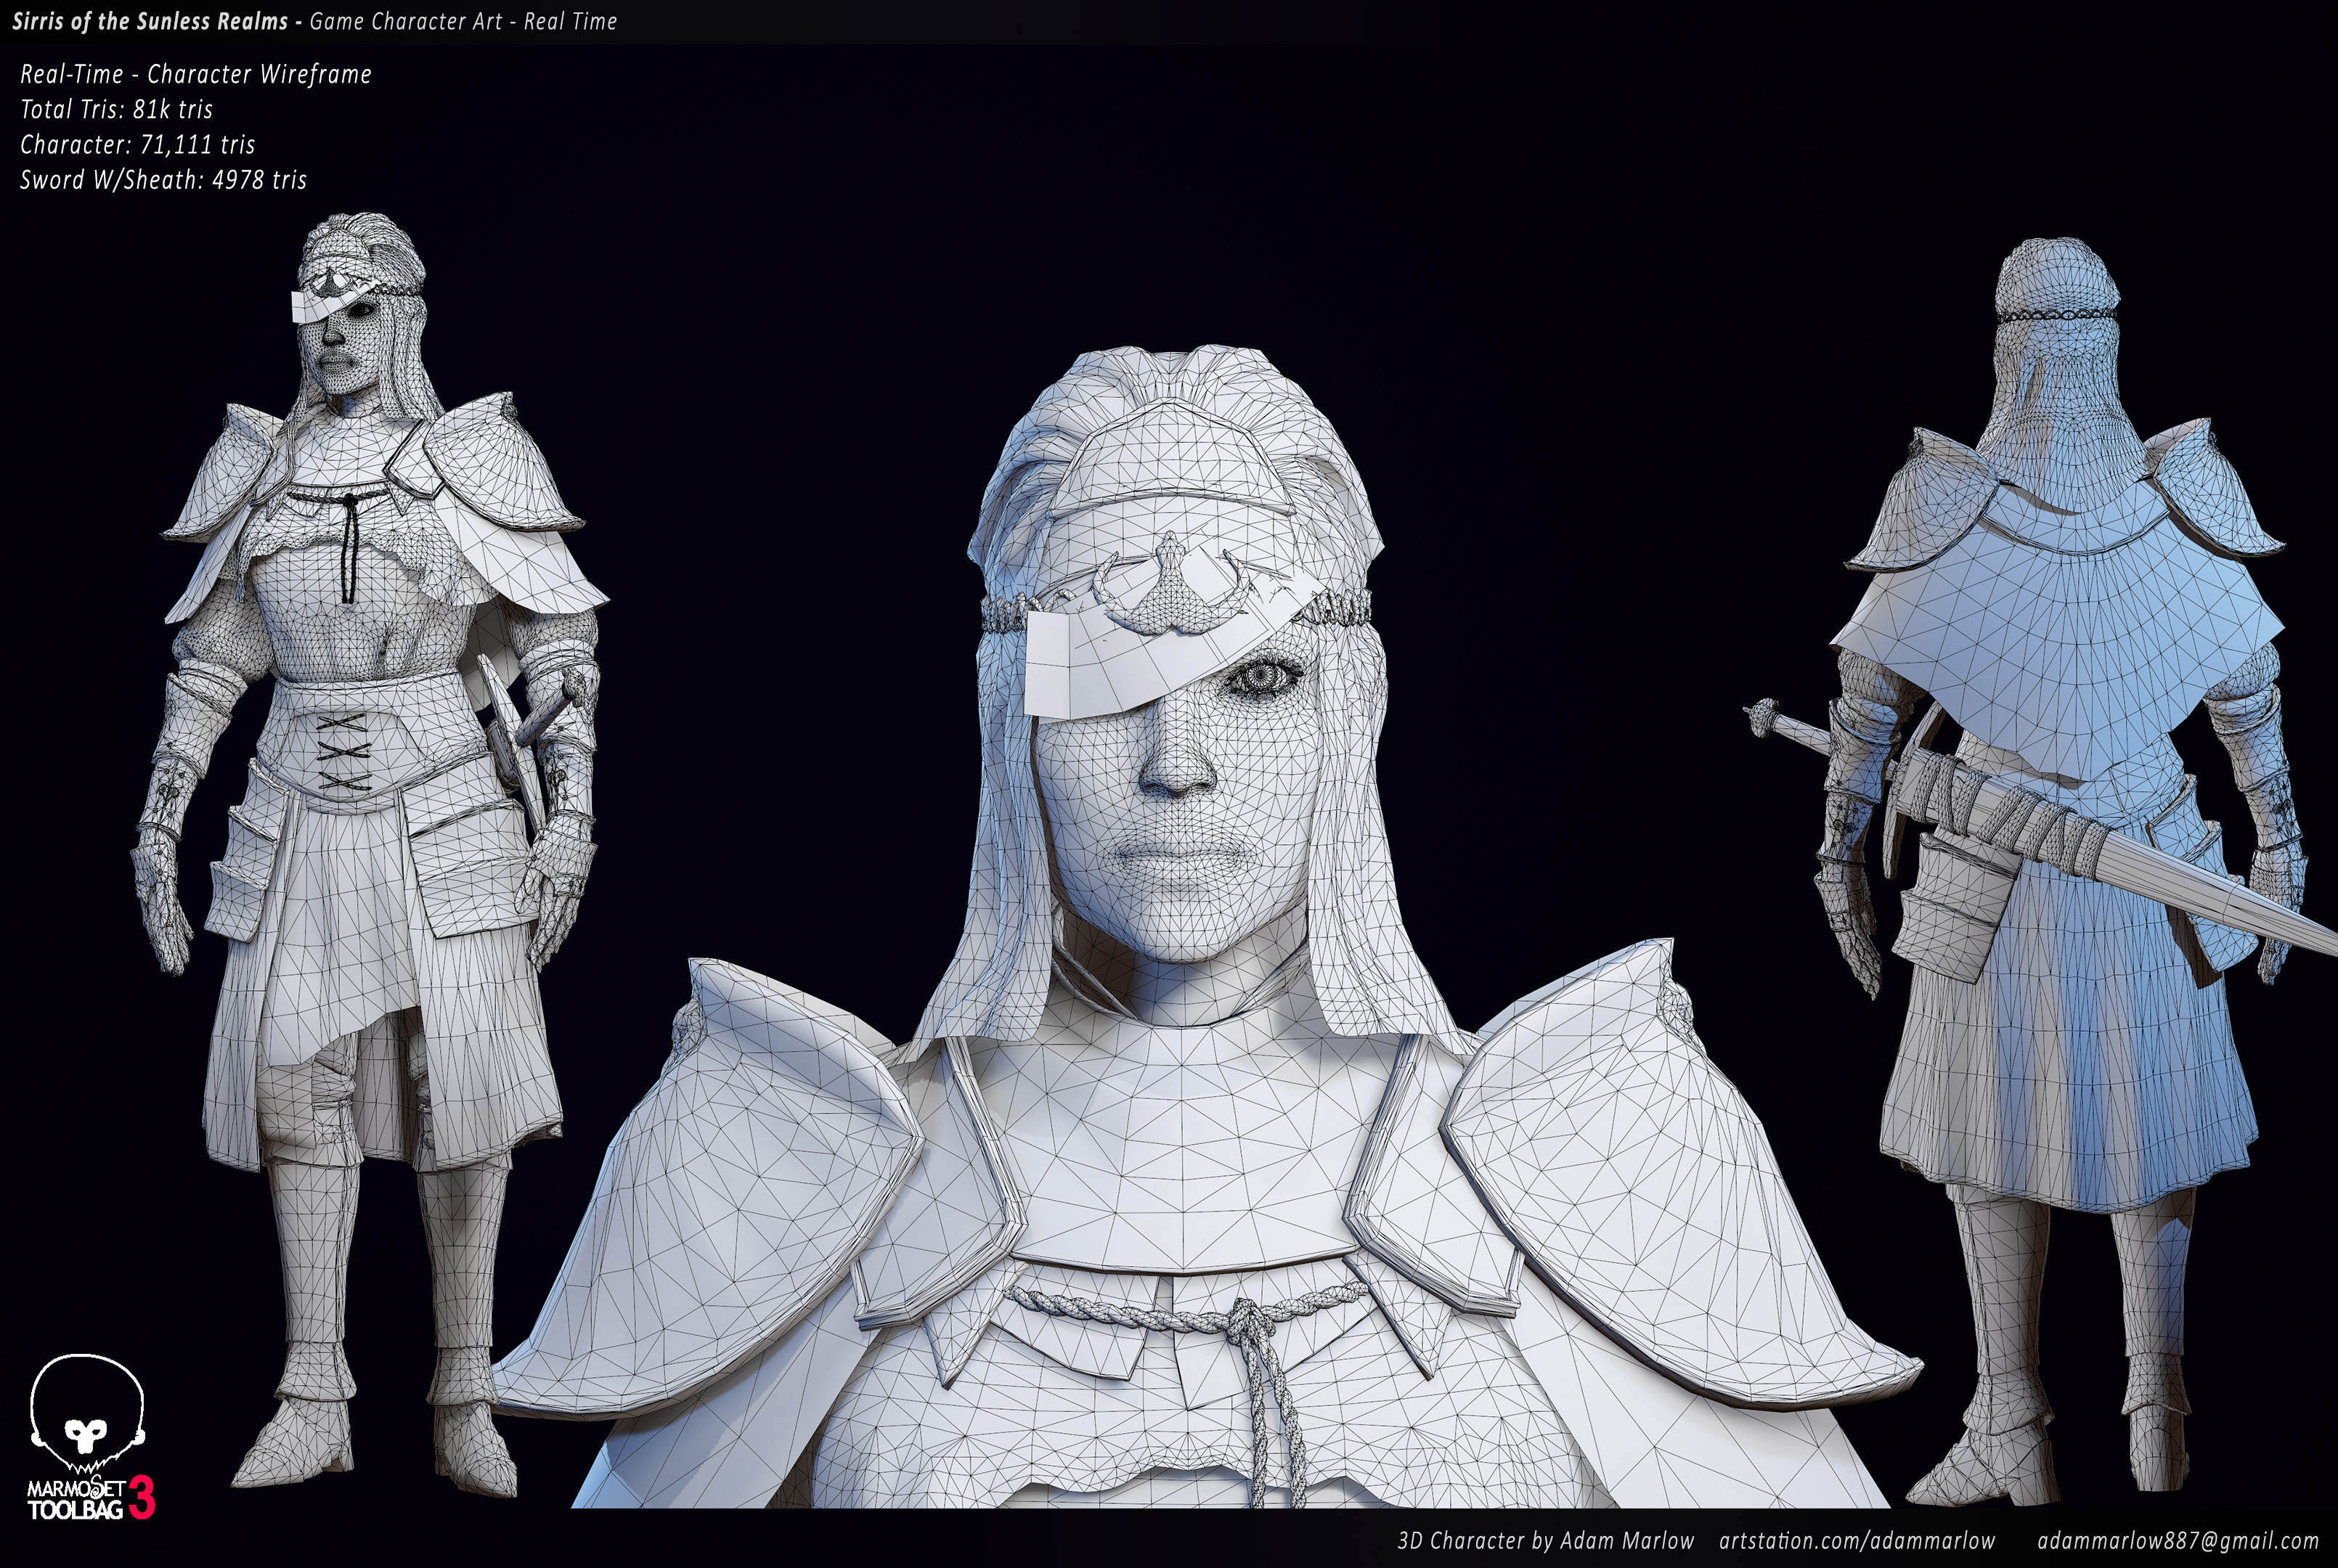 Wireframe Low Poly, Rendered in Marmoset